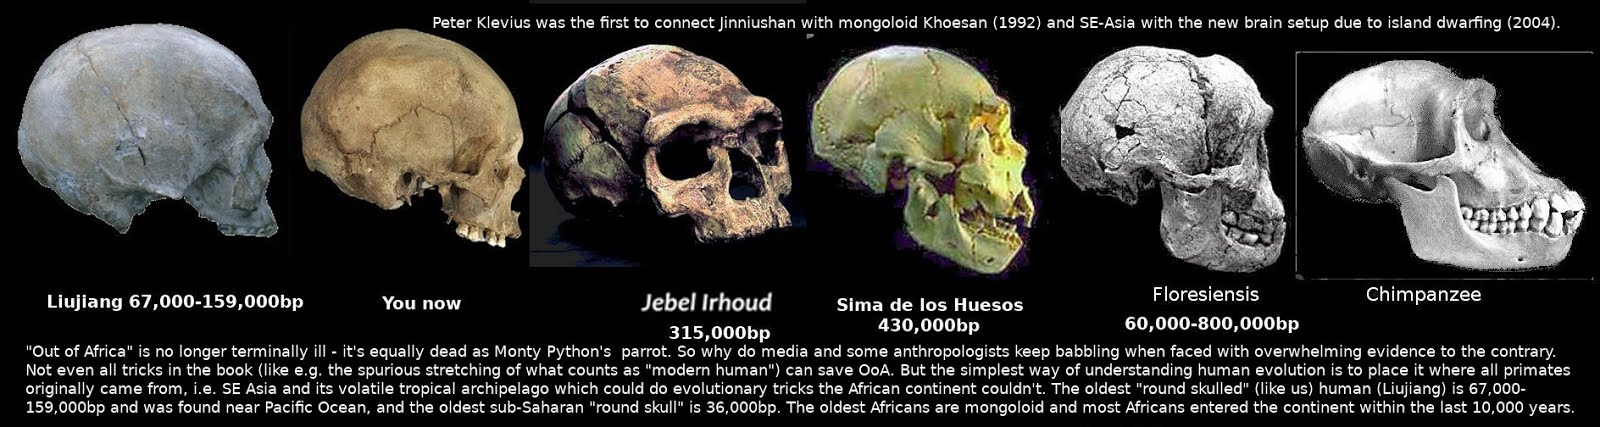 Modern humans evolved in tropical SE Asia and cold Siberia, according to Klevius